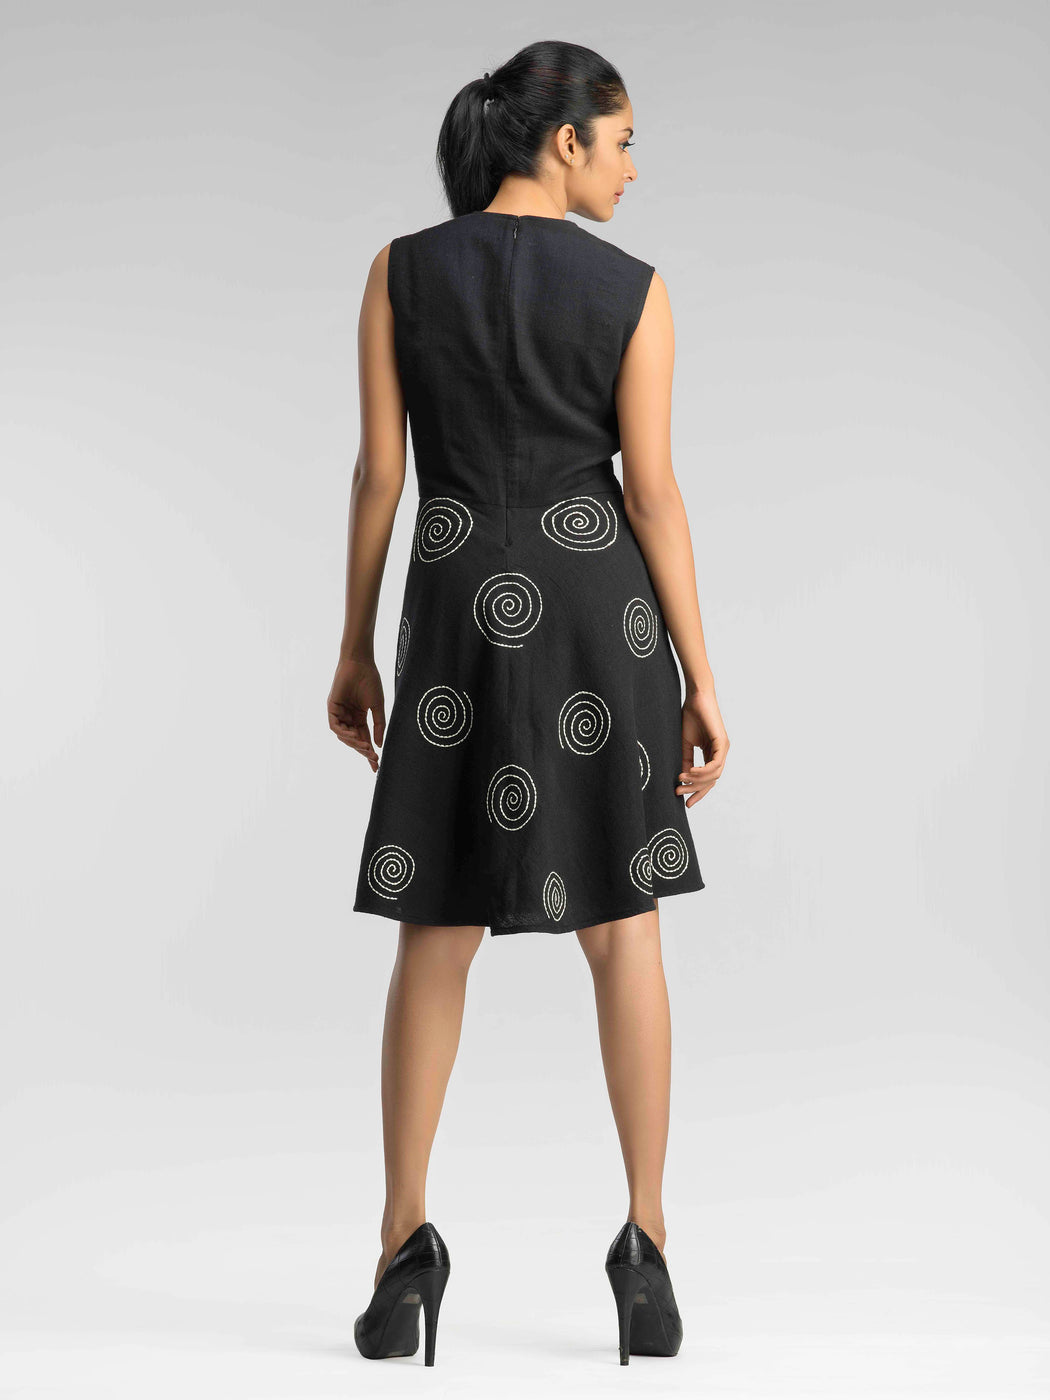 Monsoon Dream Black Skater Dress